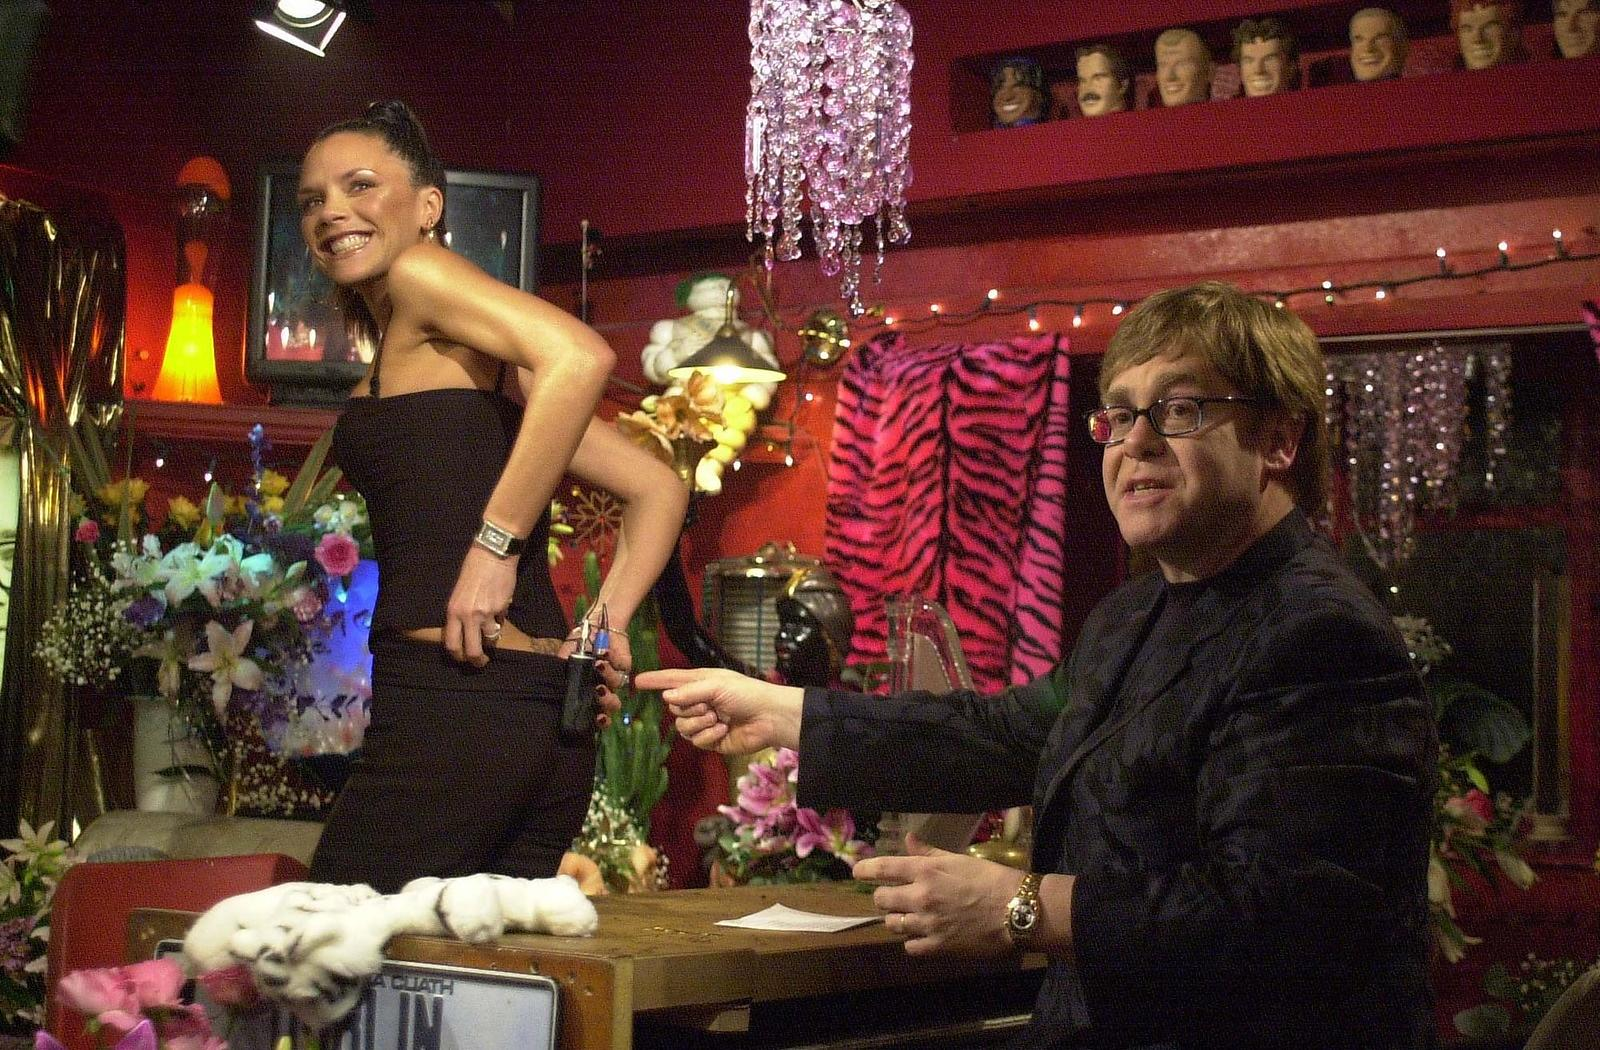 EXCLUSIVE  JEFF SPICER/ALPHA MD042900 22_12_000 VICTORIA BECKHAM SHOWING SIR ELTON JOHN HER THREE STAR TATTOO.   TFI FRIDAY C...